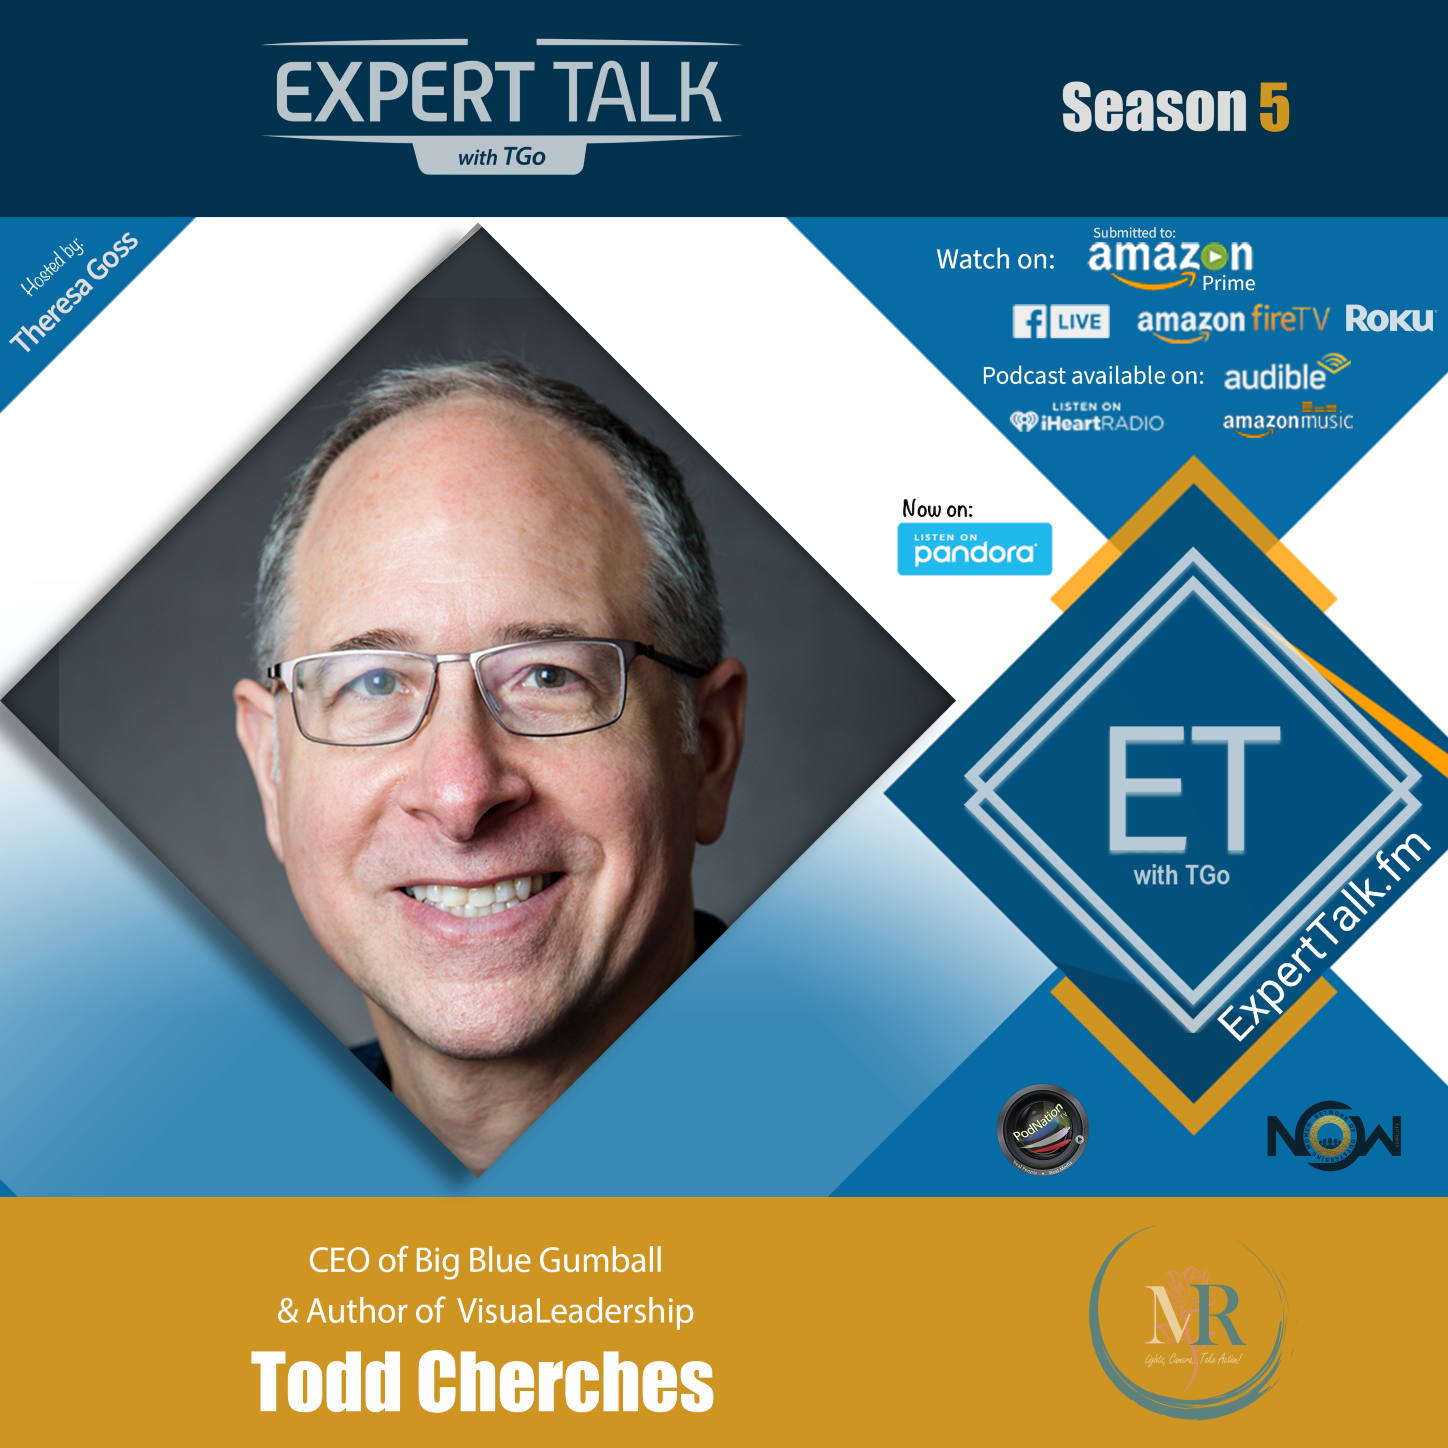 Artwork for podcast Expert Talk with TGo